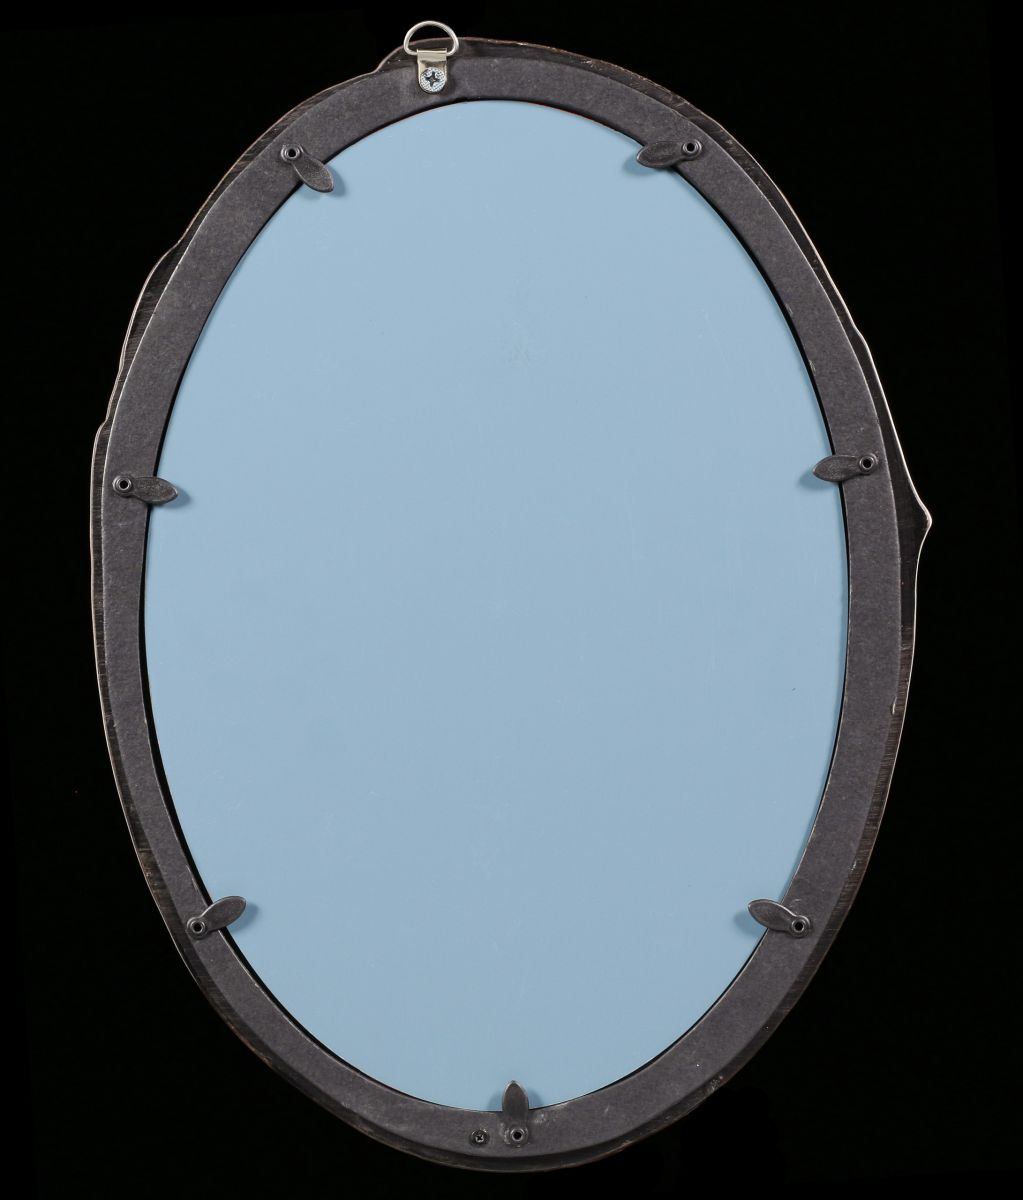 einhorn spiegel f r die wand veronese wandspiegel deko fantasy figur ebay. Black Bedroom Furniture Sets. Home Design Ideas